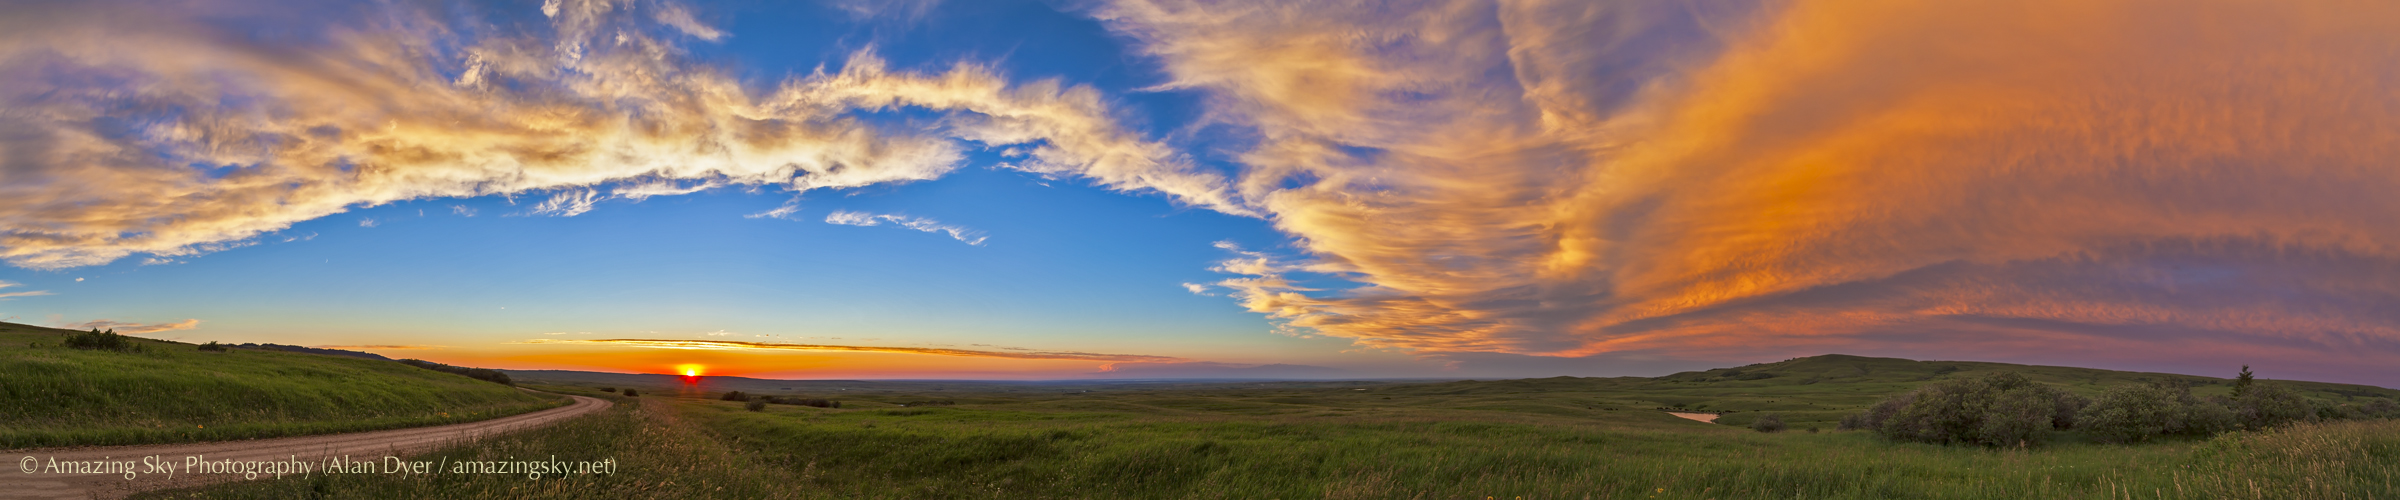 Sunset Panorama at Reesor Ranch | The Amazing Sky